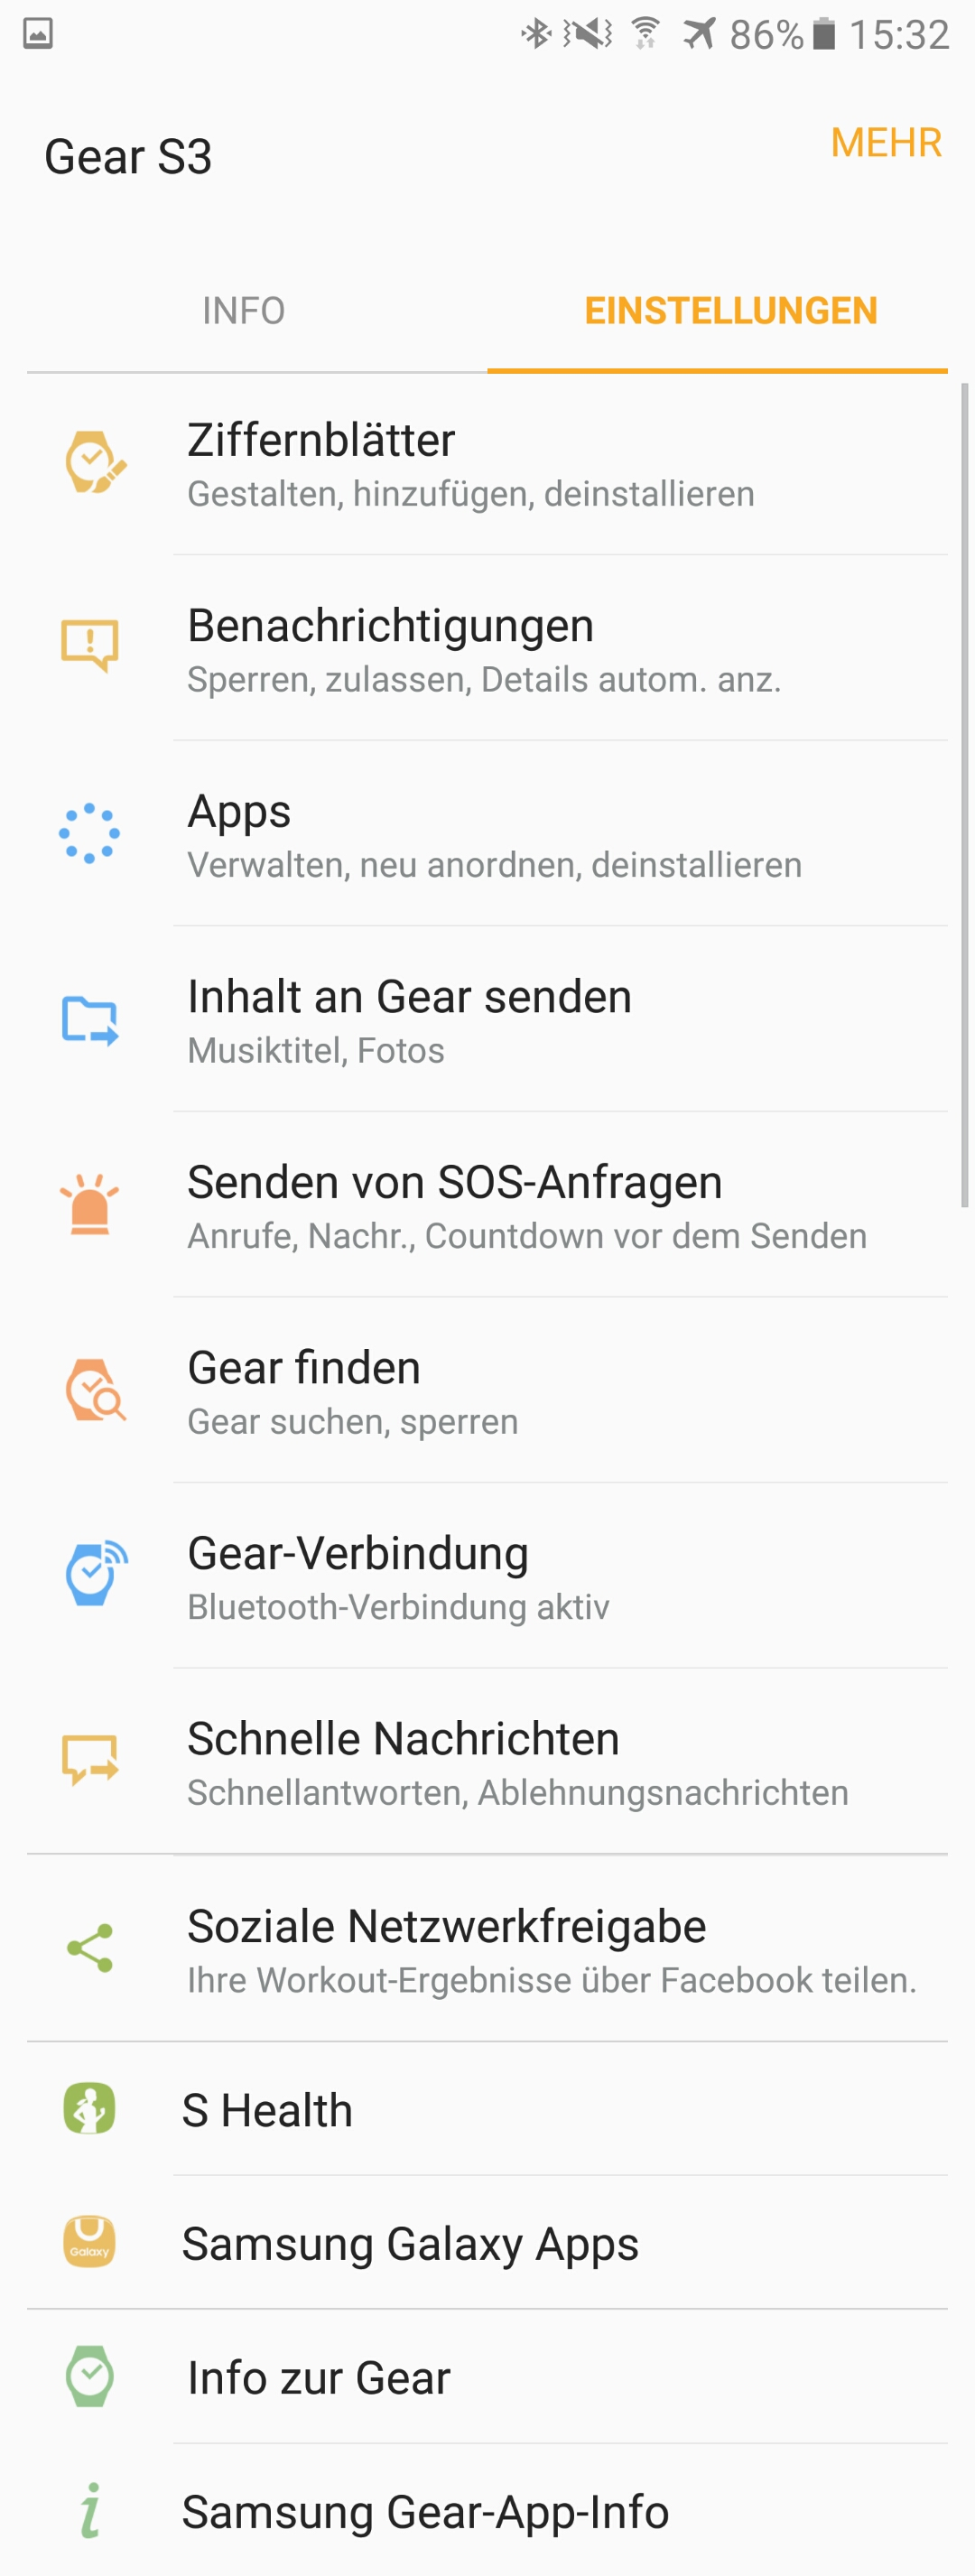 Screenshot_20170116-153245 Samsung Gear S3 frontier - Die Thronfolgerin im Test Gadgets Gefeatured Samsung Smartwatches Technologie Testberichte Tizen Wearables